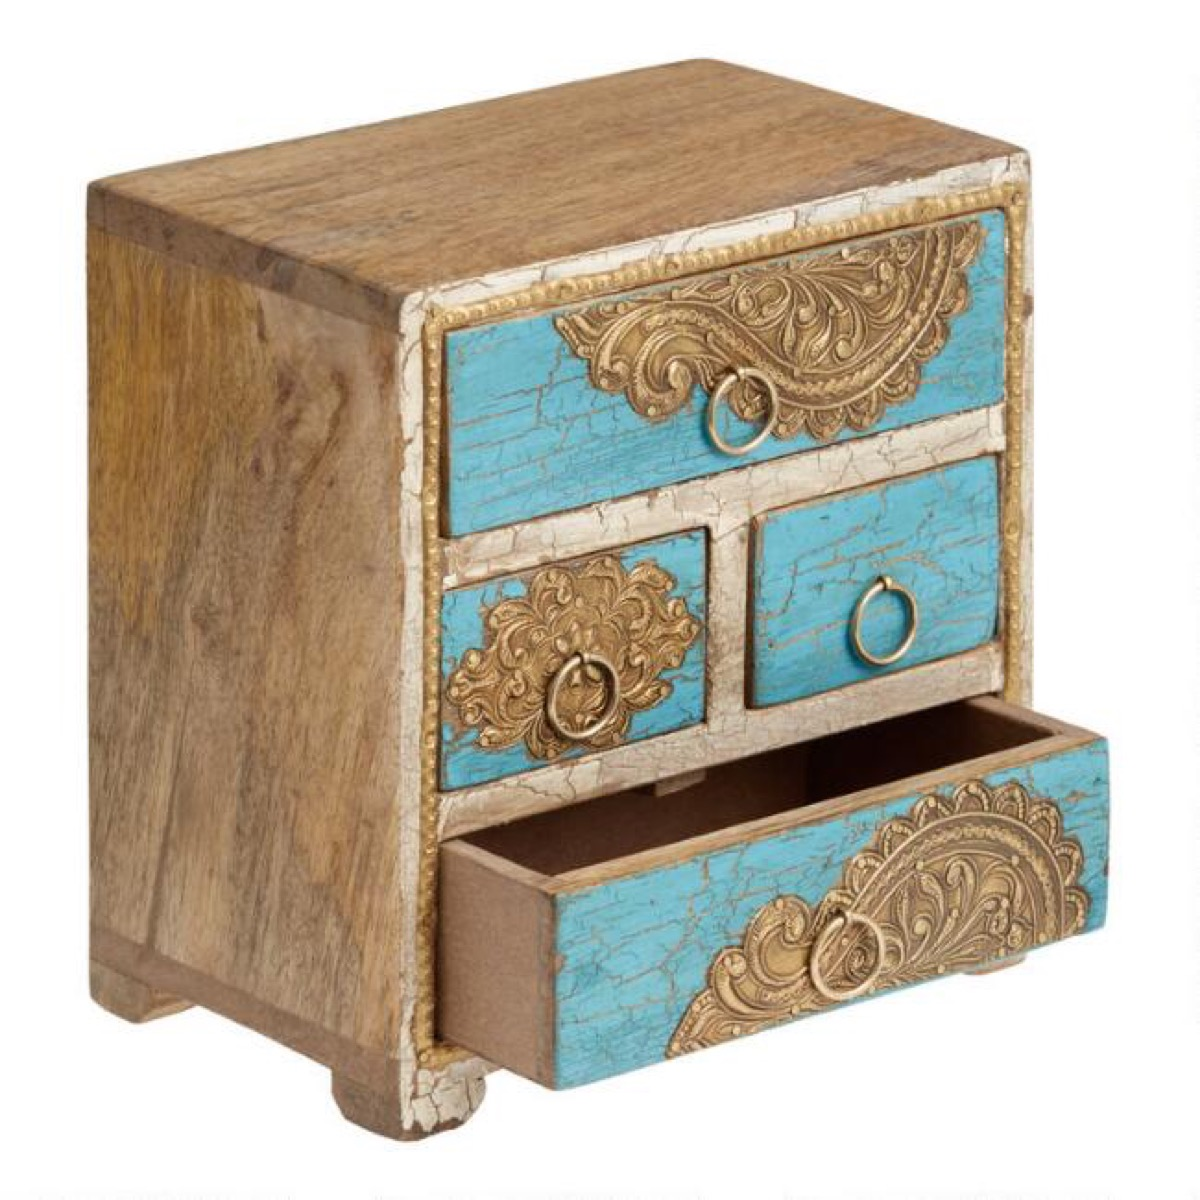 small wooden storage chest, best gifts for college students